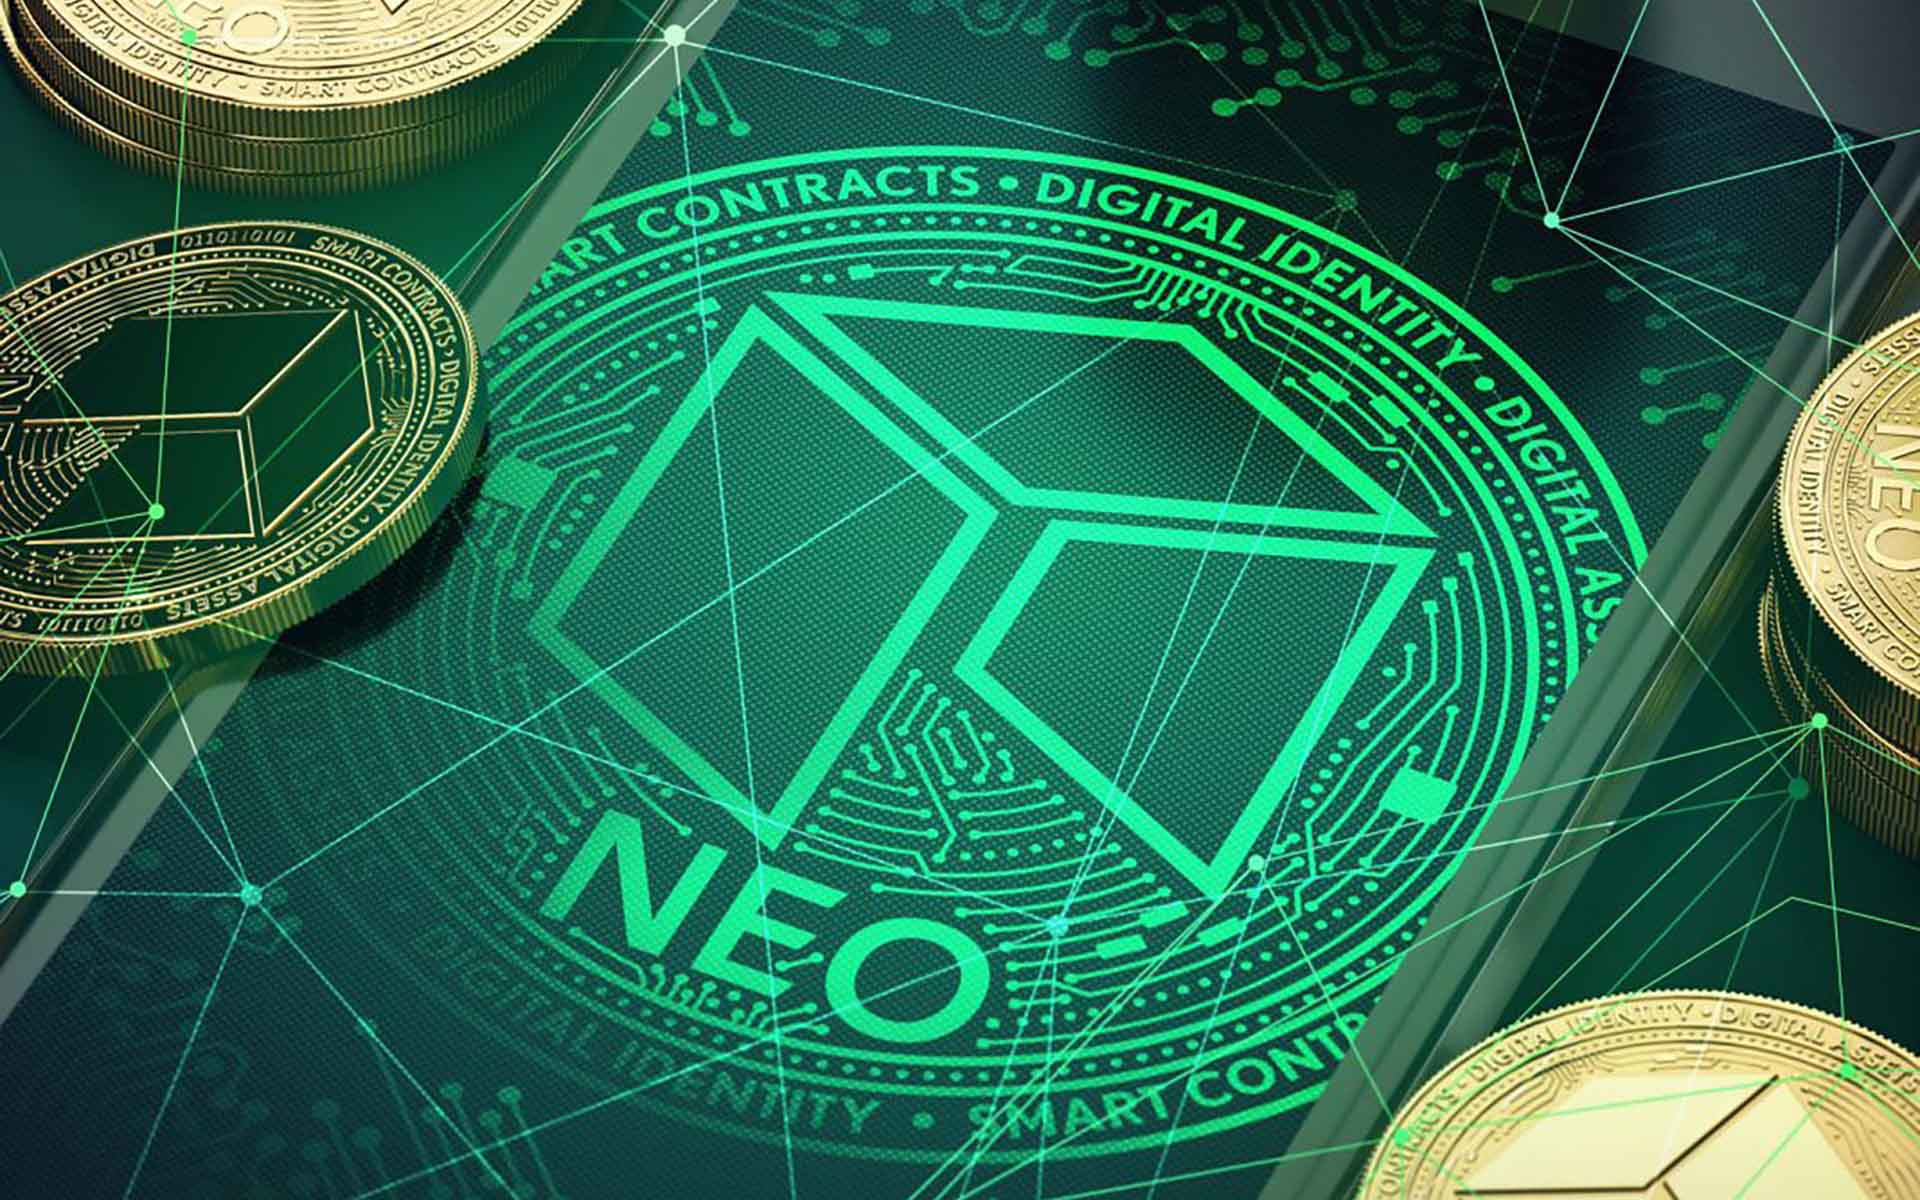 NEO Market Analysis by eToro